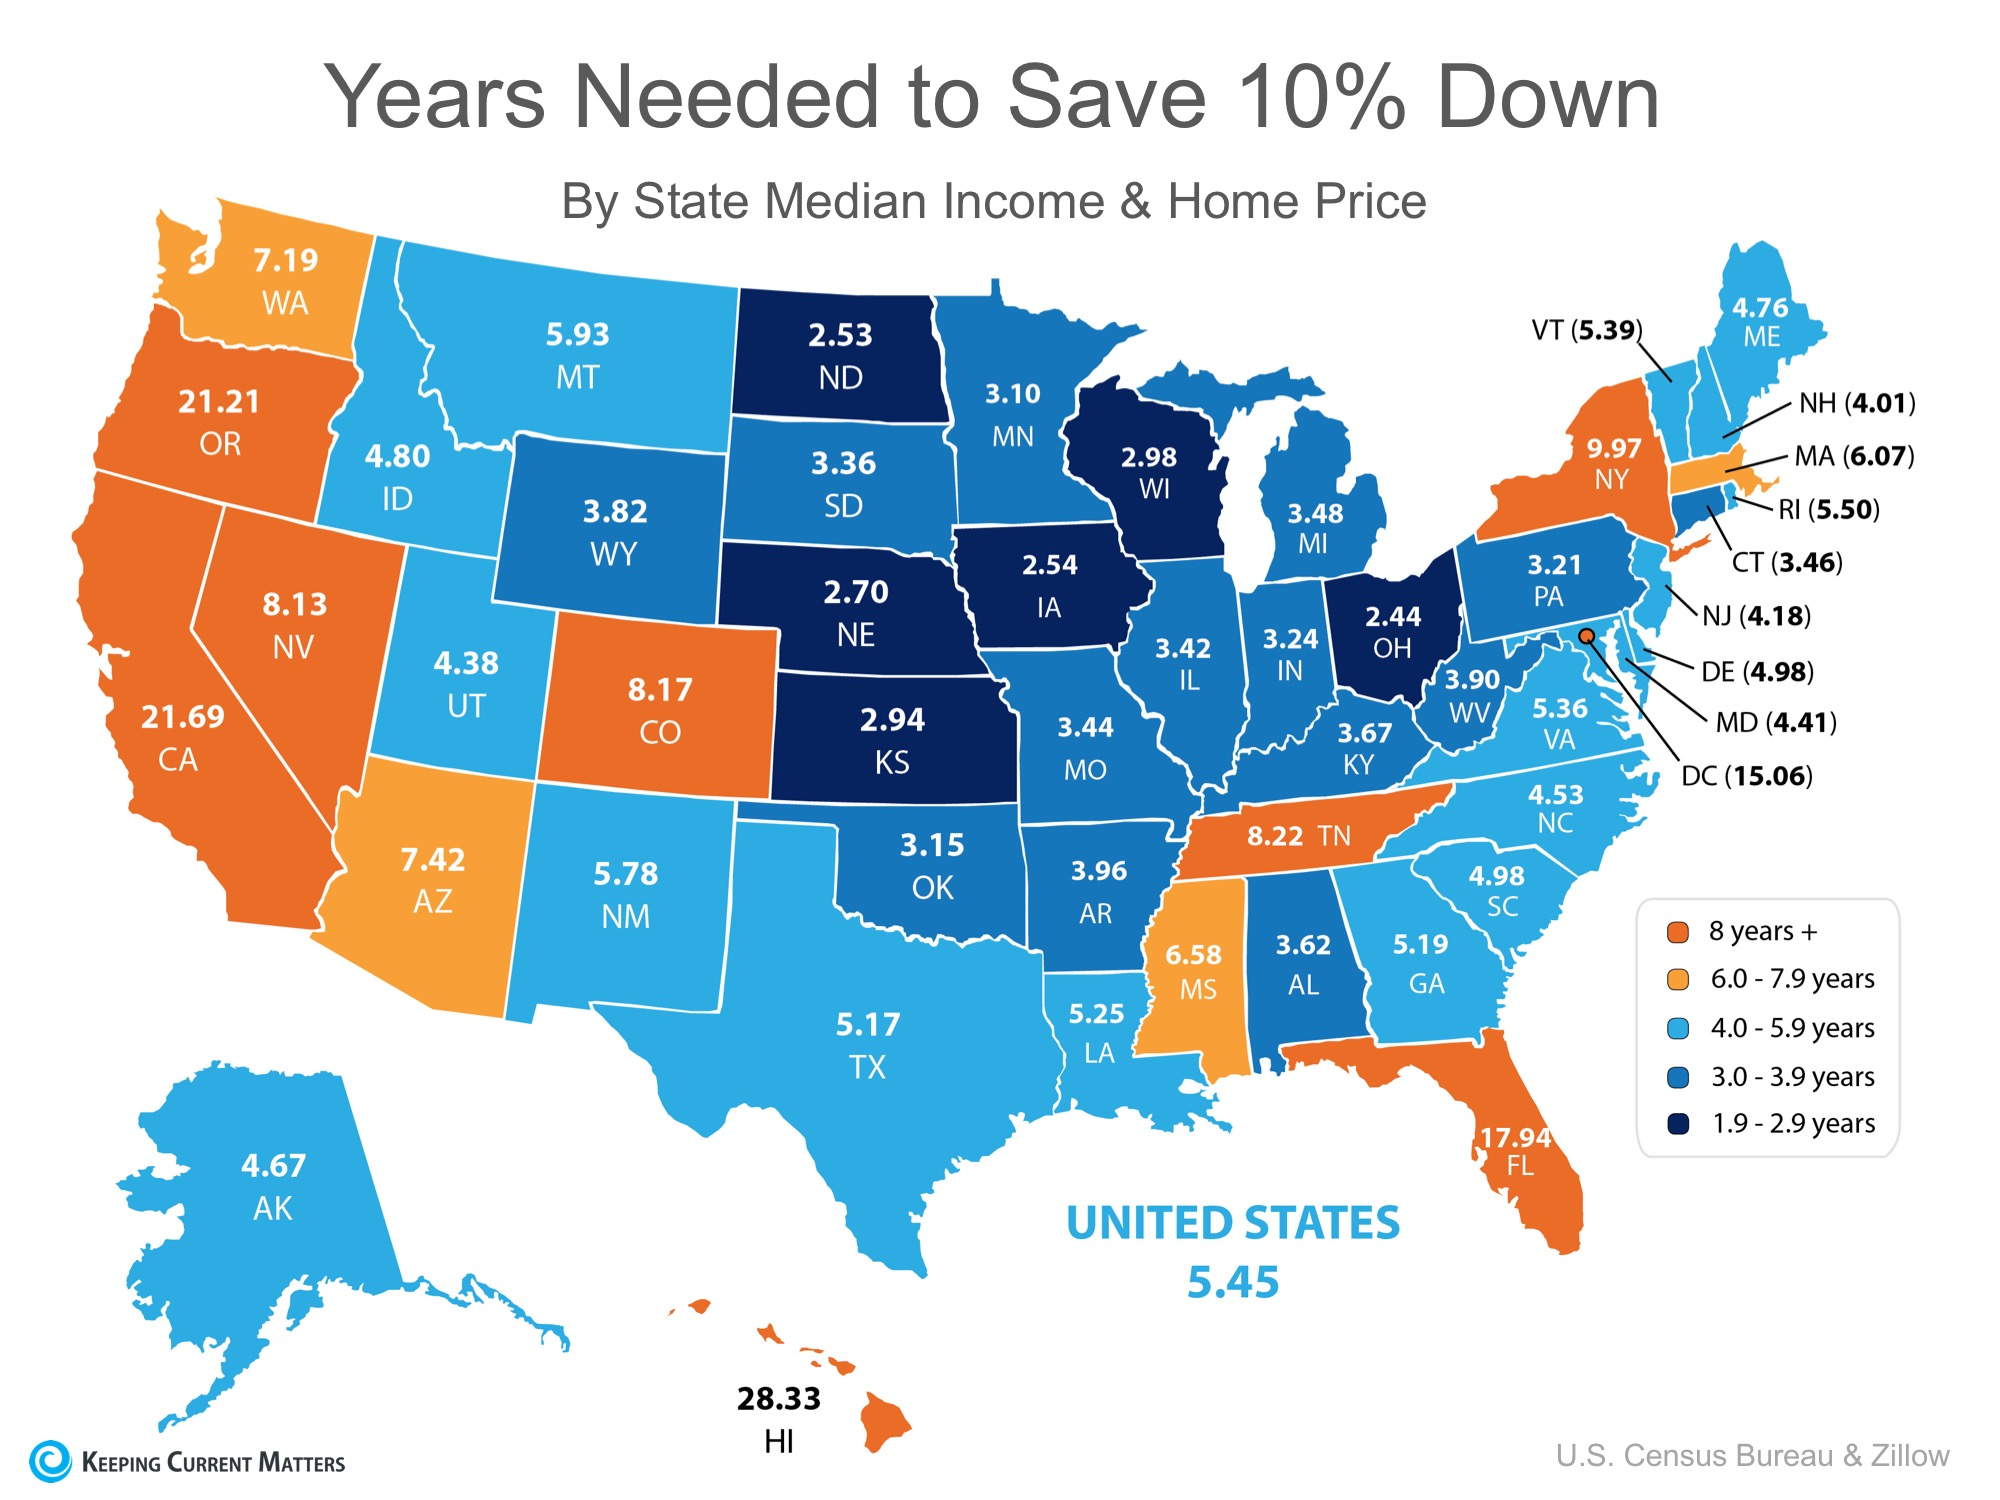 Years needed to save 10% Down